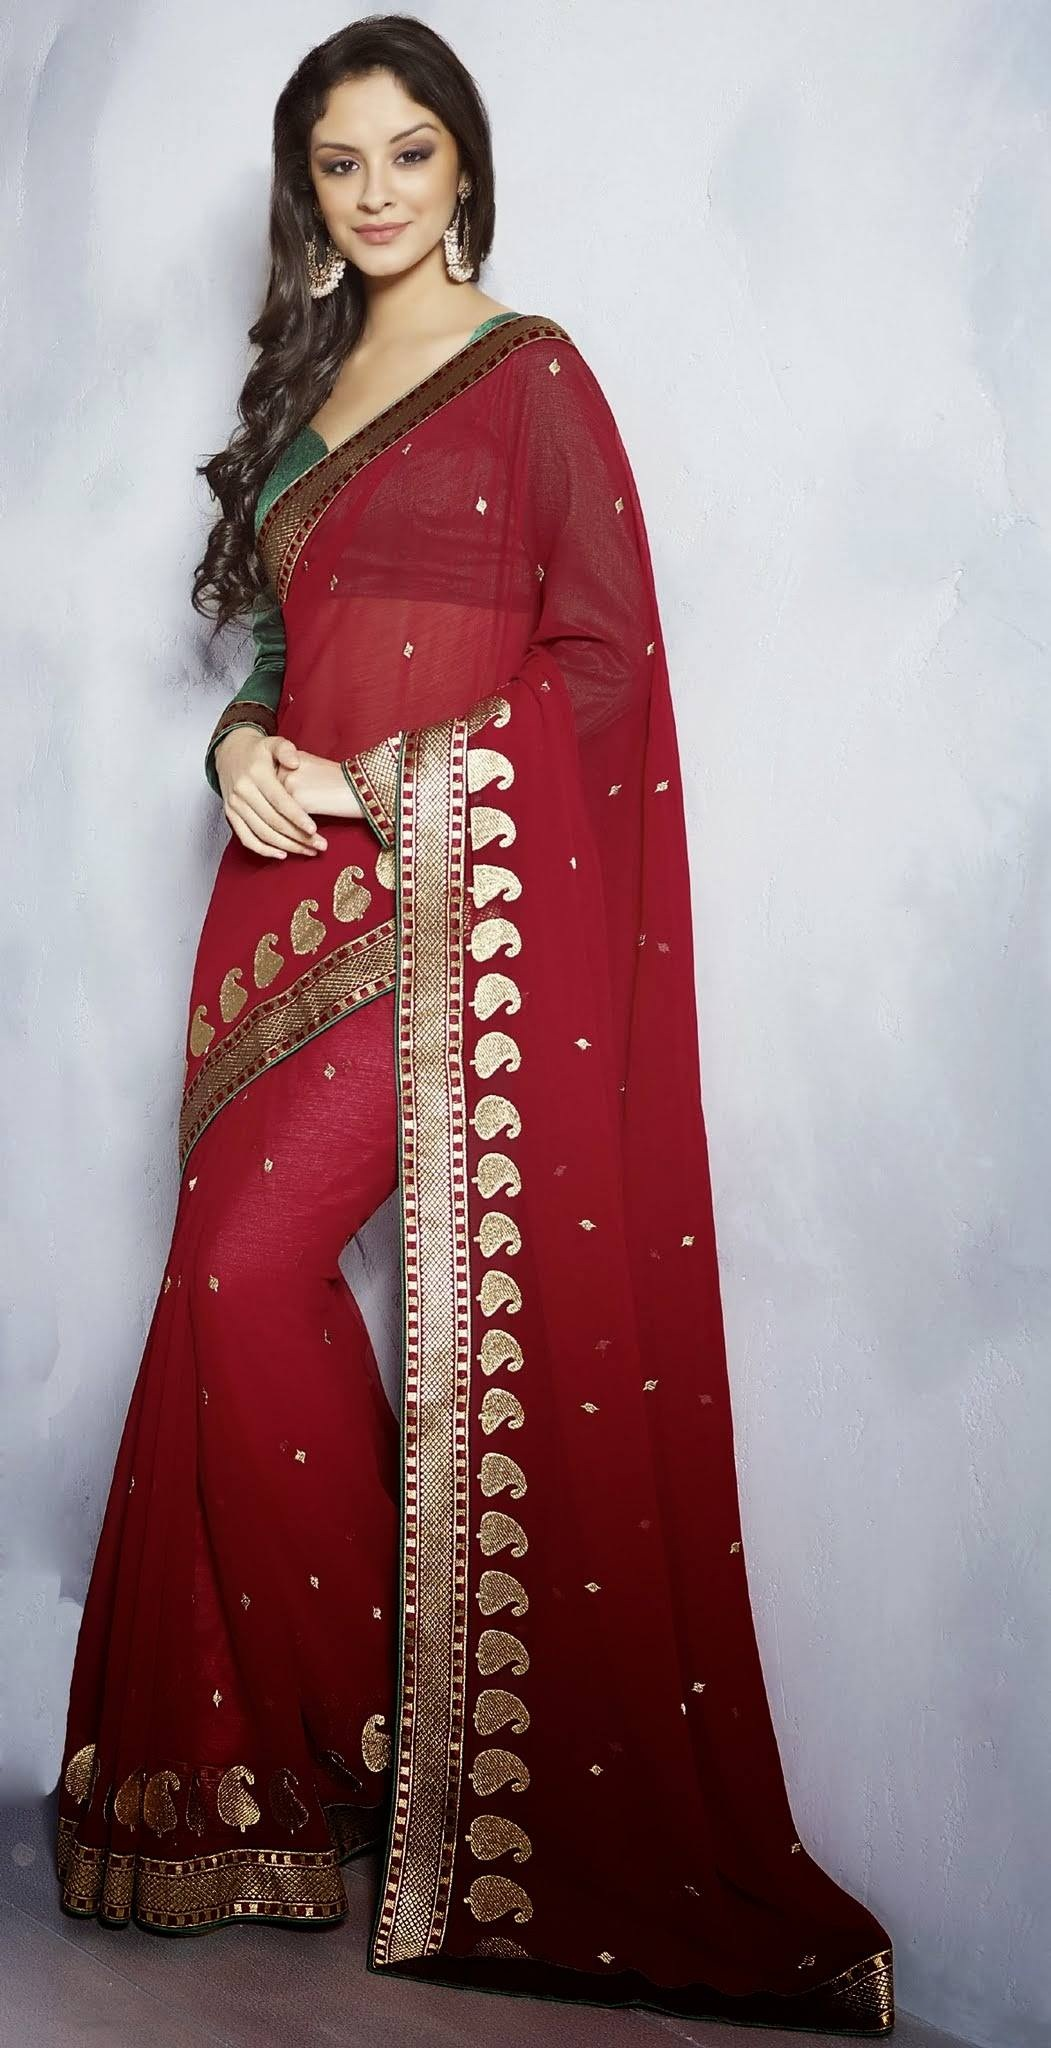 Classic Saree For Young Girls 8 | StyleCry: Bridal Dresses, Women ...